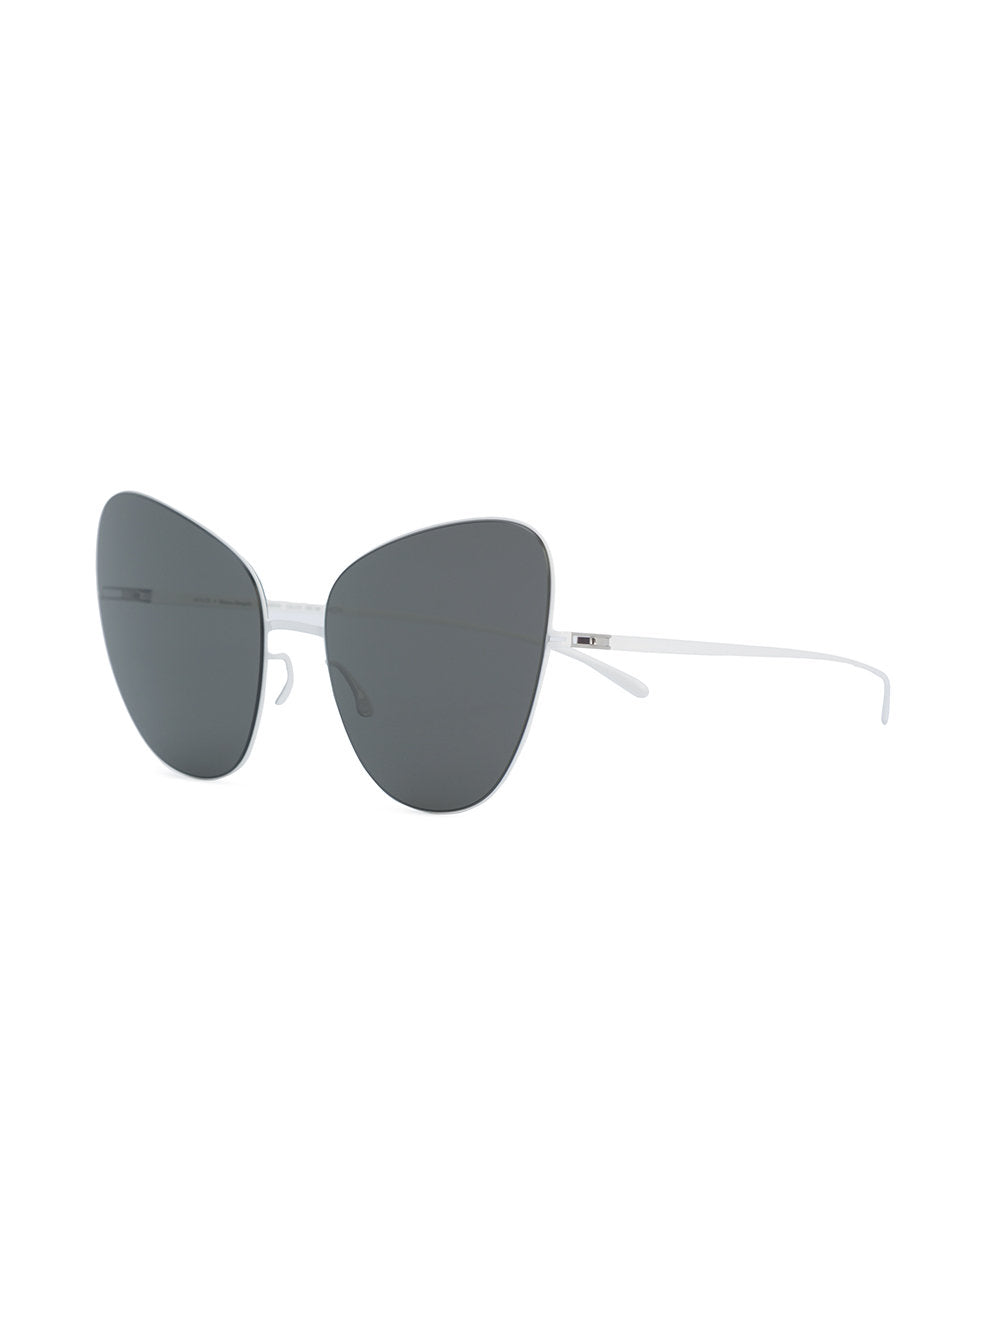 Mykita x Margiela Alien Sunglasses - 2